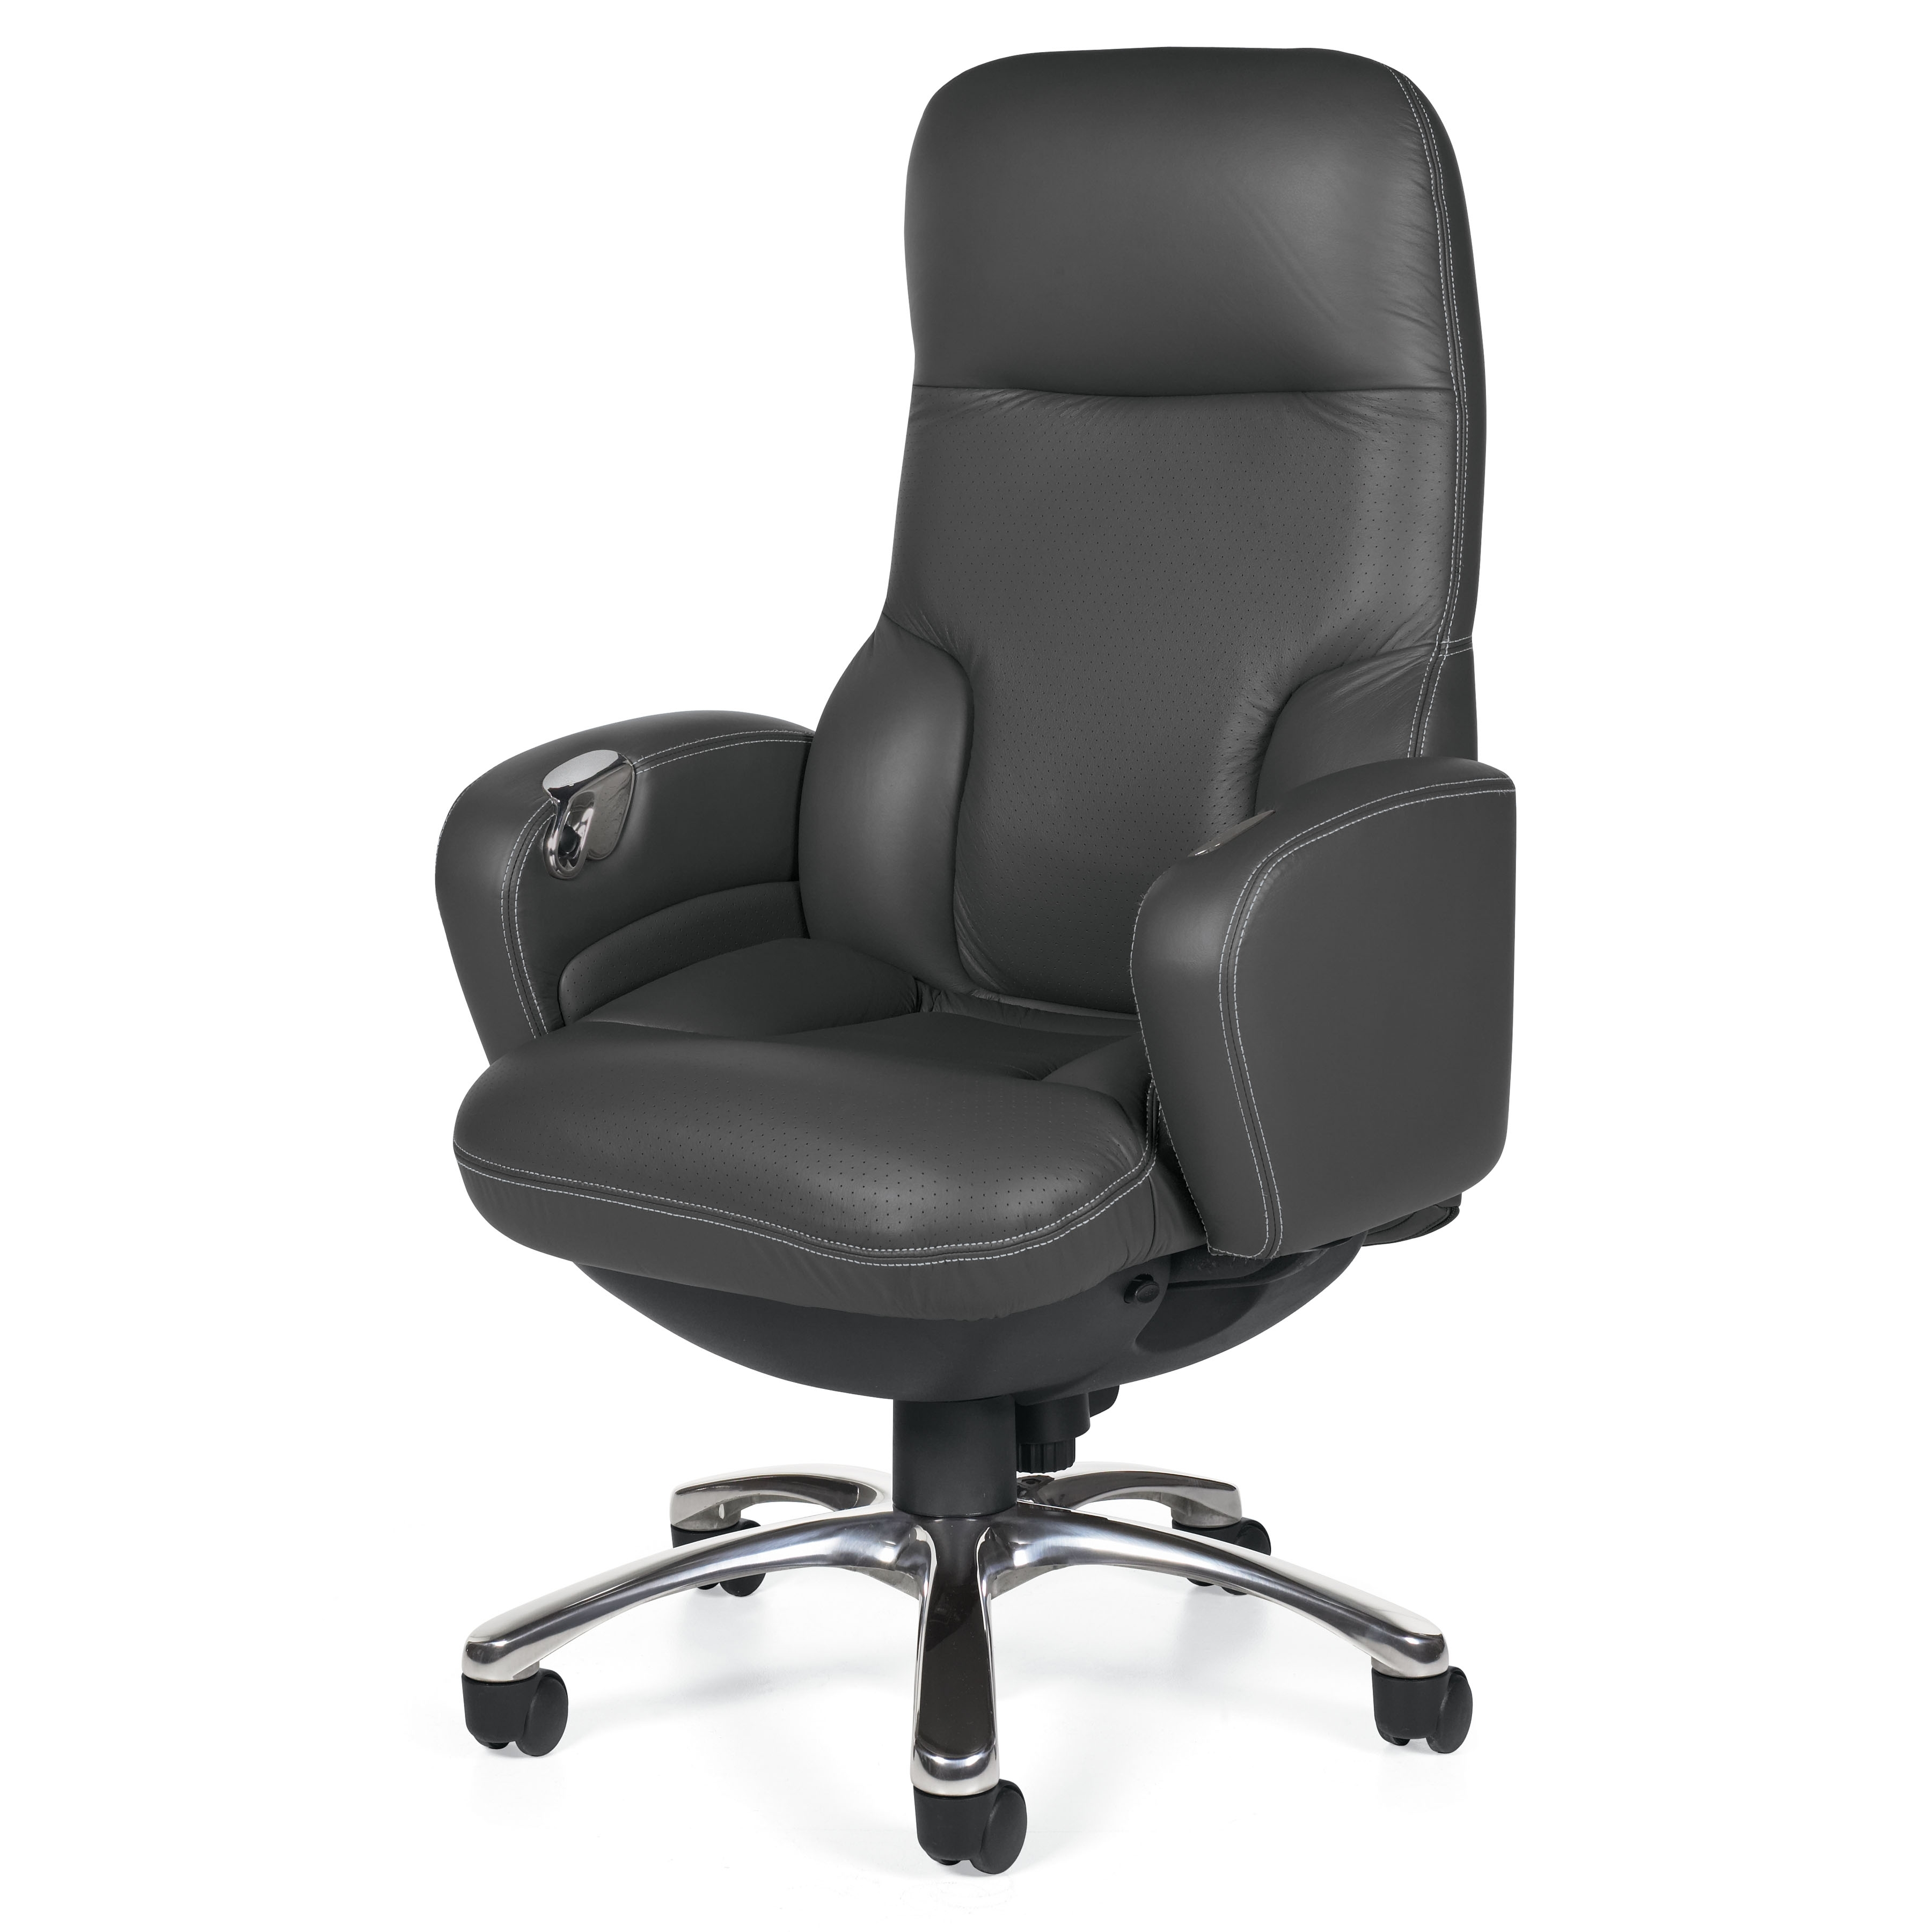 Widely Used Executive Office Chairs With Footrest With Office Chair Footrest Attachment Lean Back Office Chair Laptop (View 18 of 20)